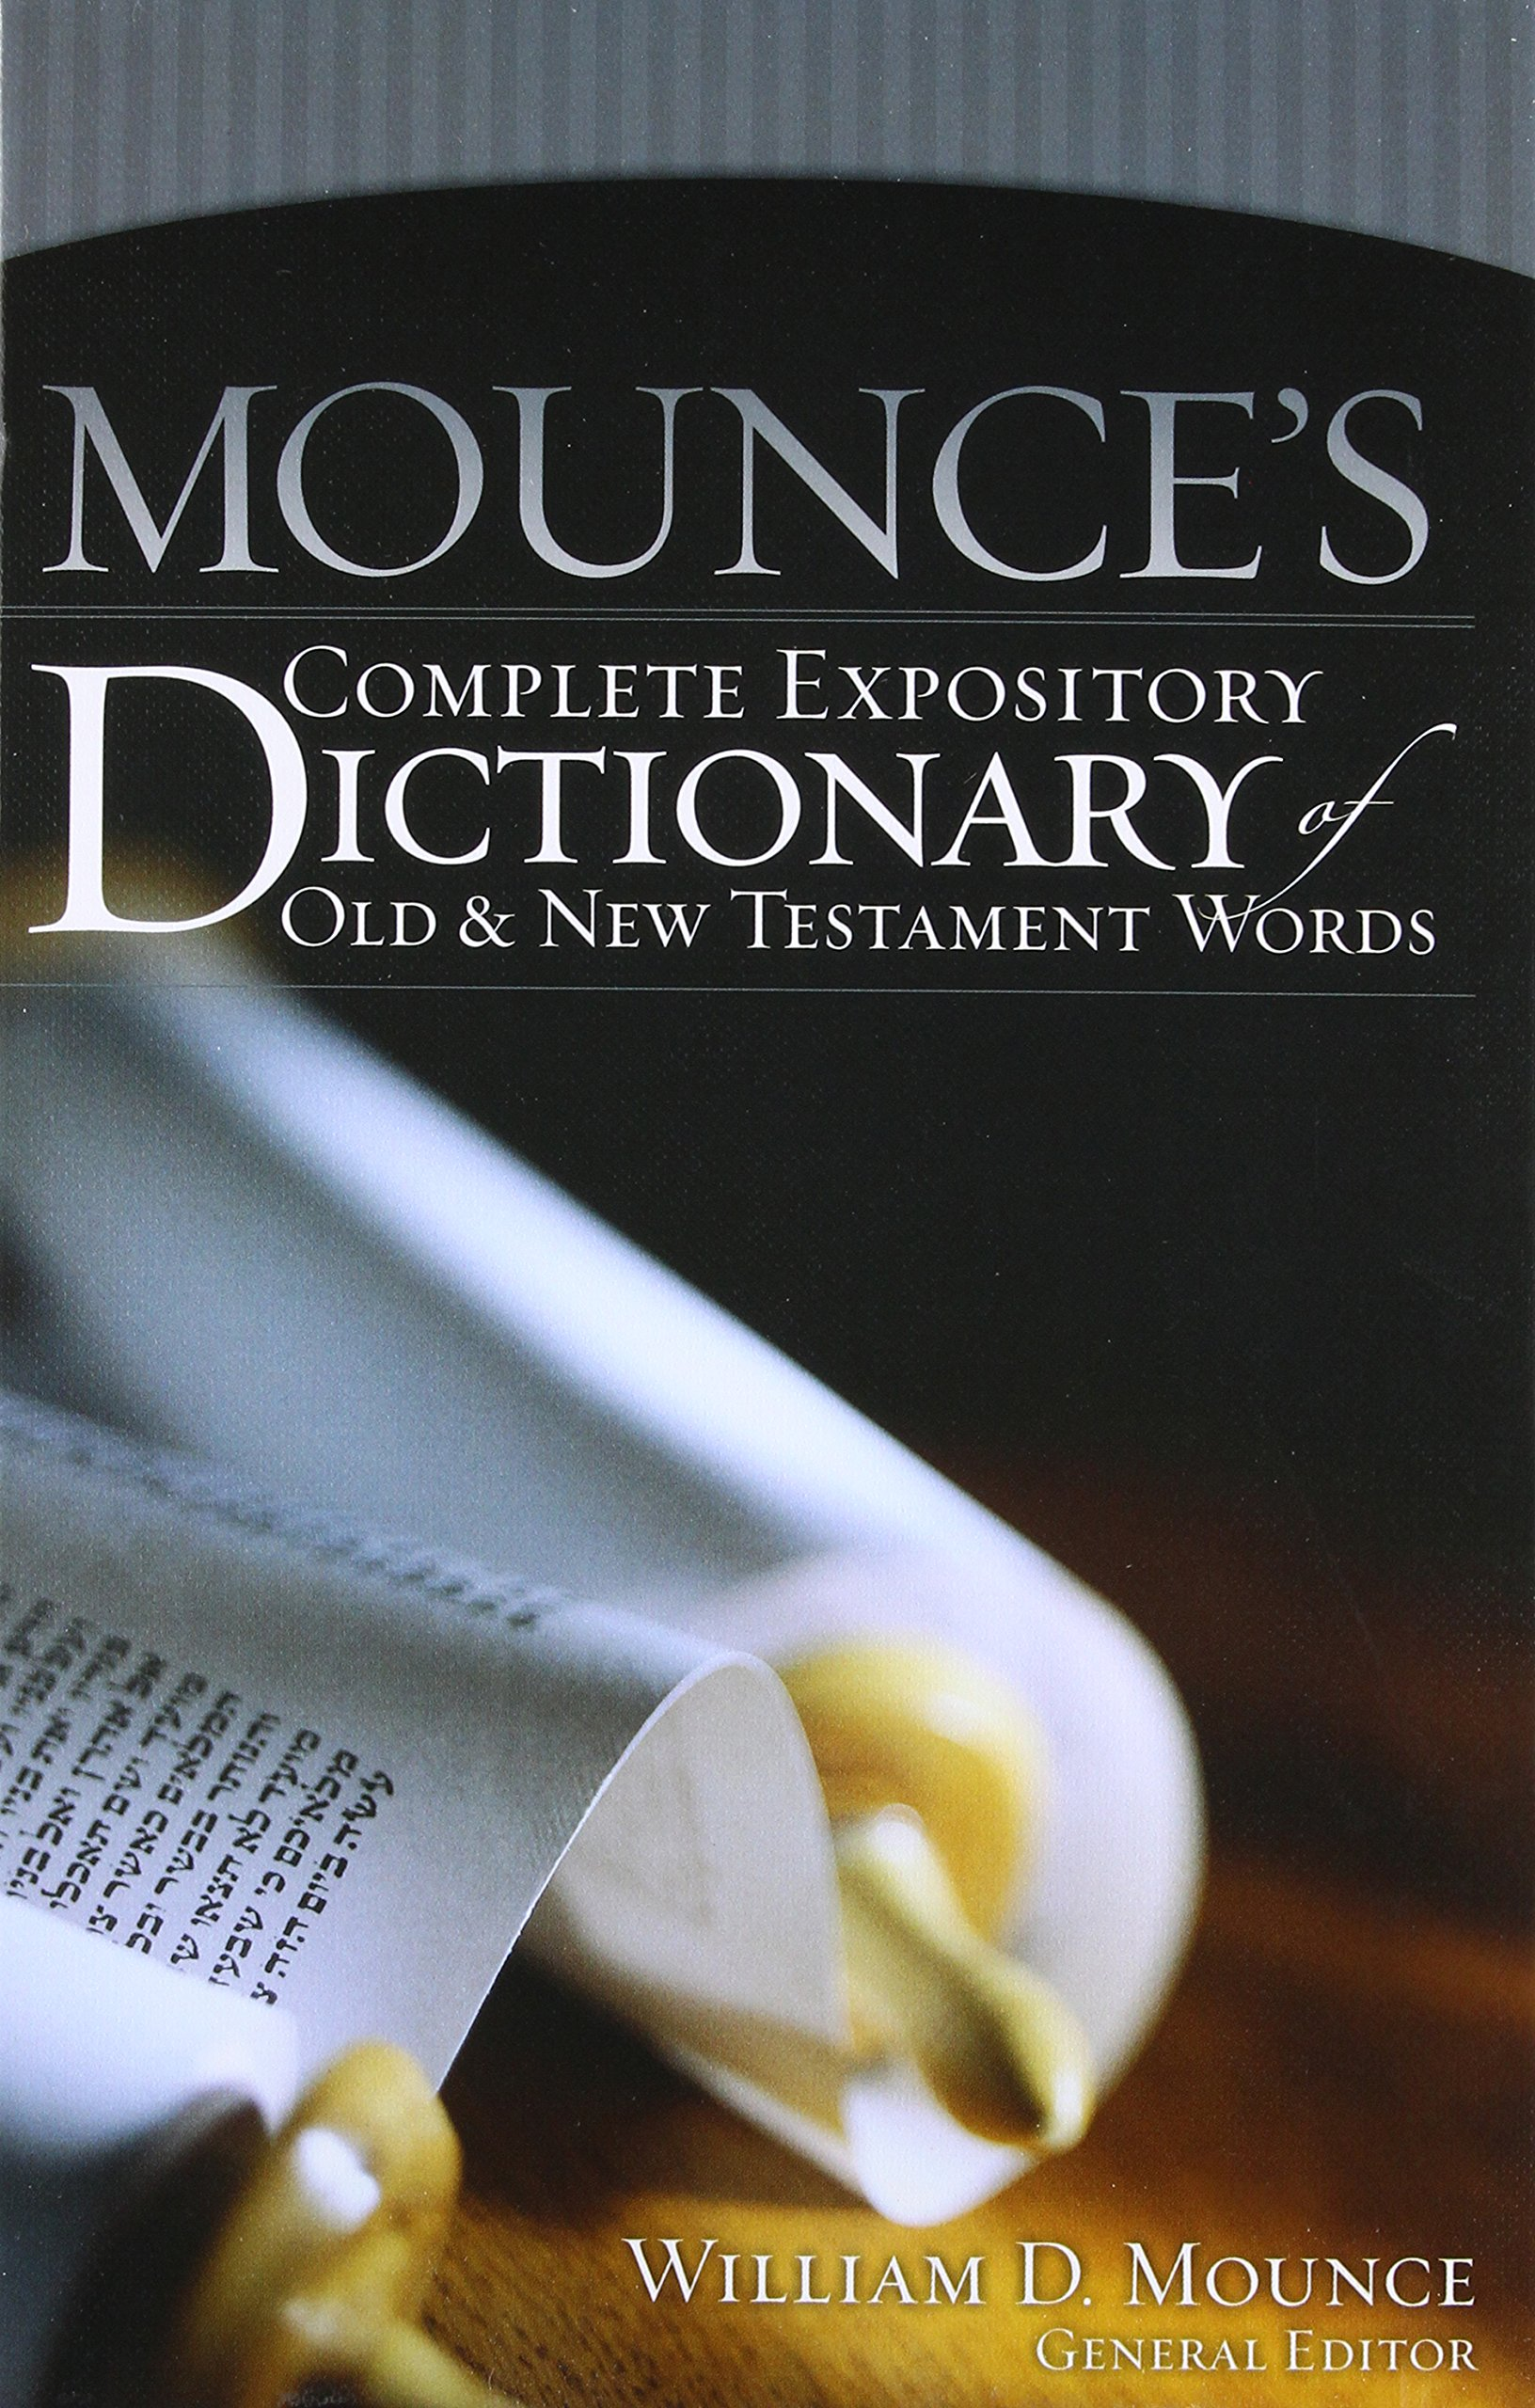 Mounce's Complete Expository Dictionary of Old and New Testament Words by HarperCollins Christian Pub.